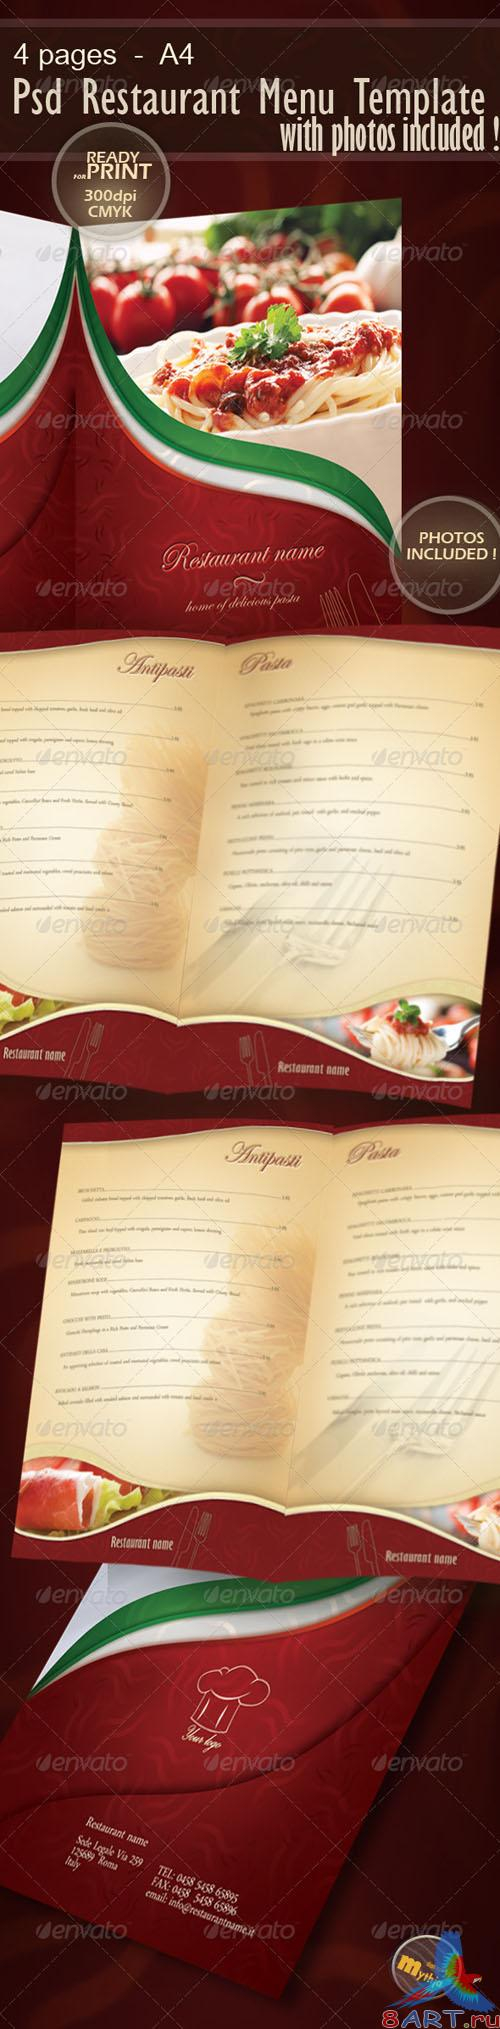 GraphicRiver - Restaurant Menu template with photos incuded 1176350